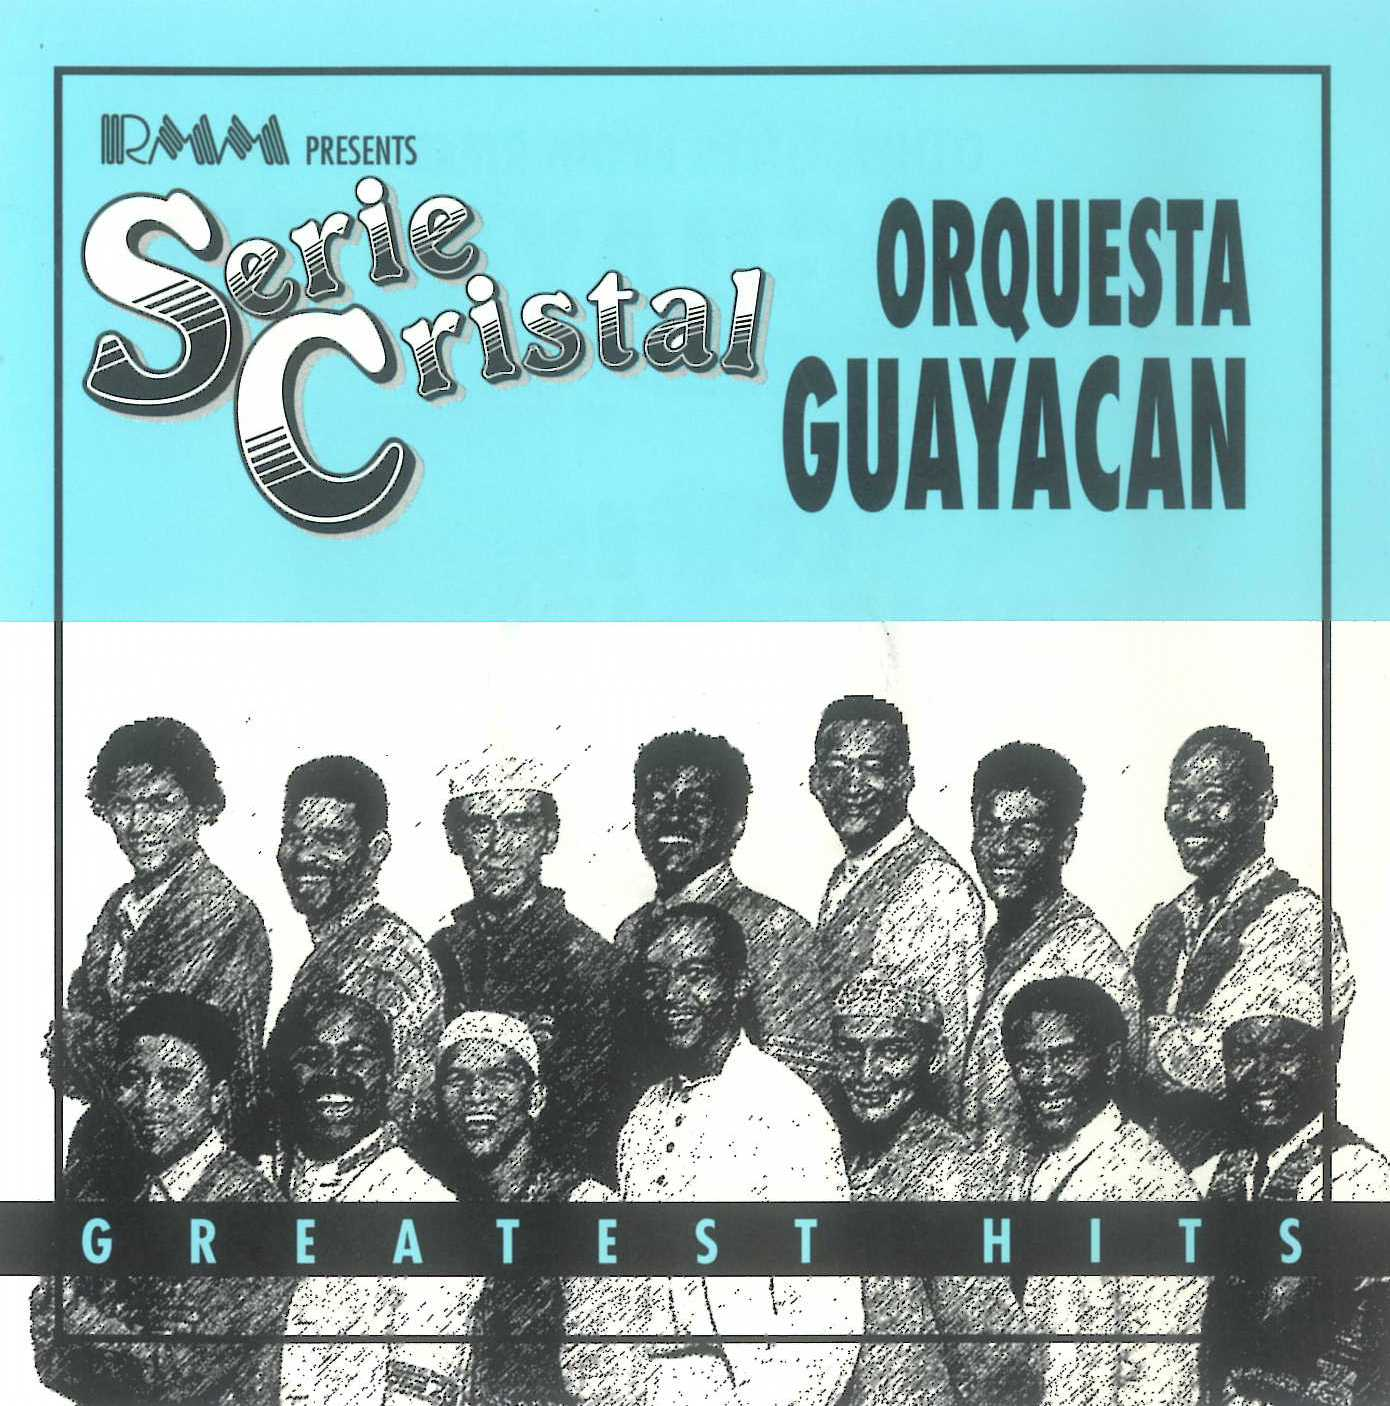 Serie Cristal: Greatest hits